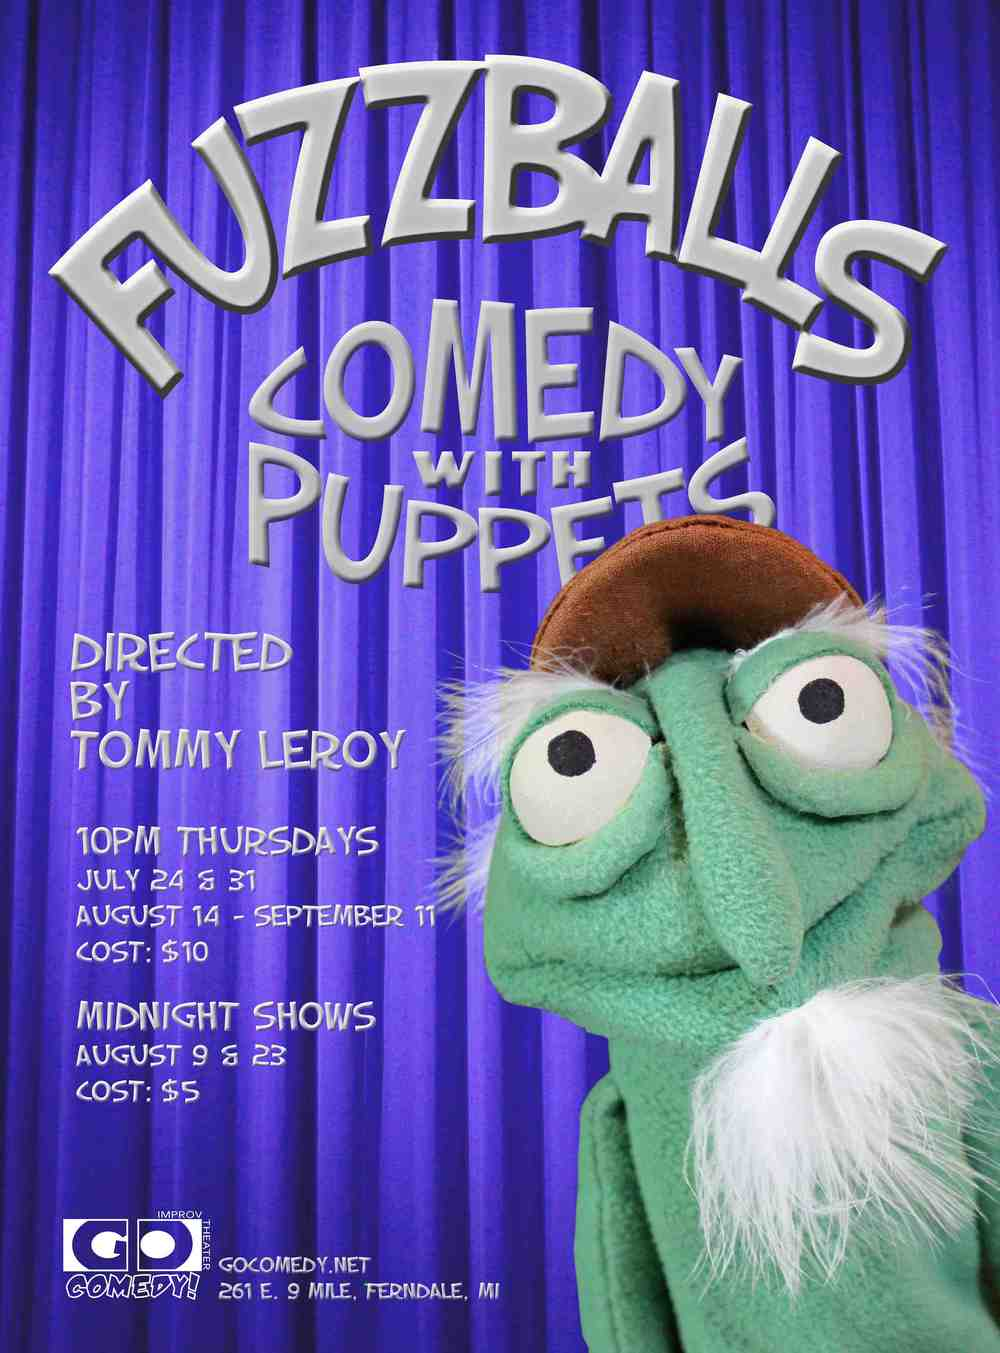 Our newest show features over 30 original puppets! From the mind of Tommy LeRoy, this blend of sketch and improv performed by Go Comedy's finest puppeteers.  Sneak peek opening on Thursday, July 31 at 10pm and runs Thursdays at 10pm starting August 14. Get your tickets on the tickets page.